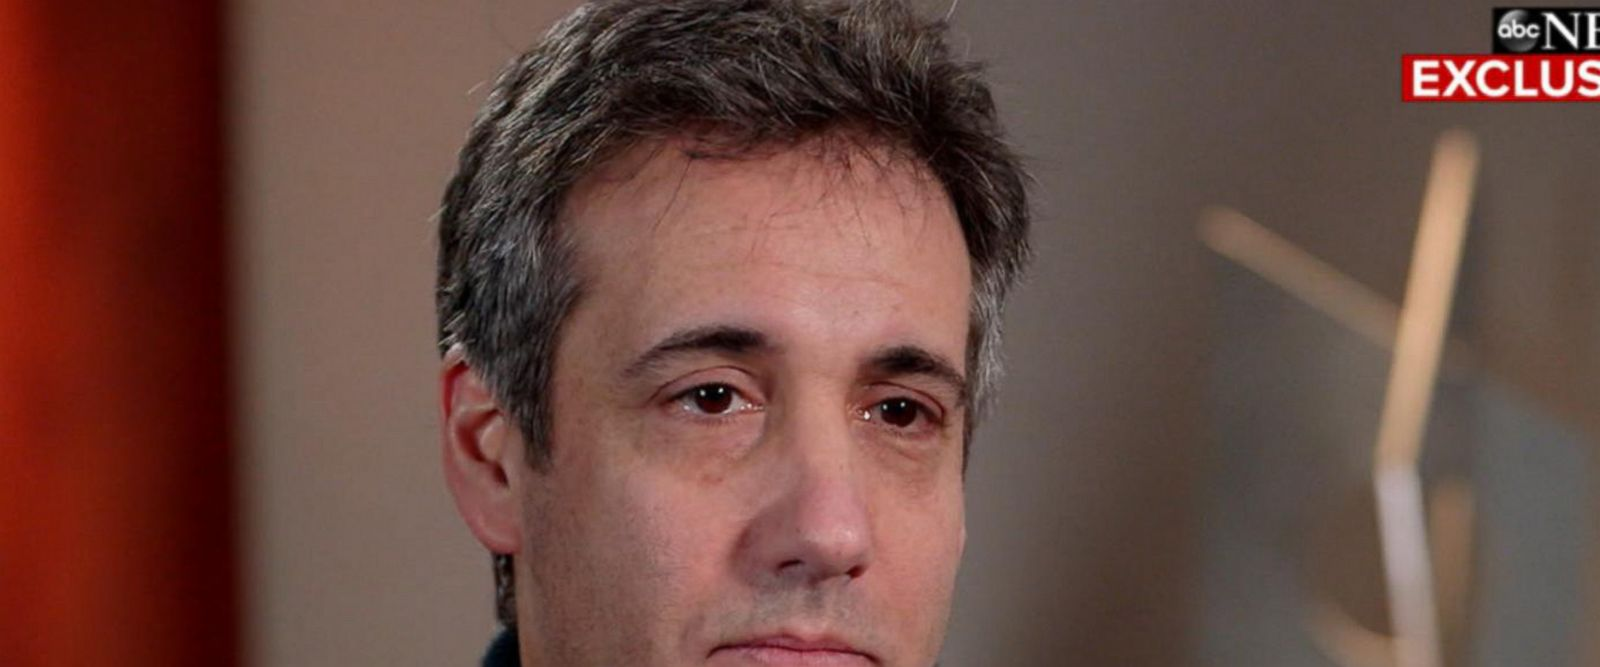 VIDEO: Michael Cohen speaks out after his sentencing: 'I have my freedom back'